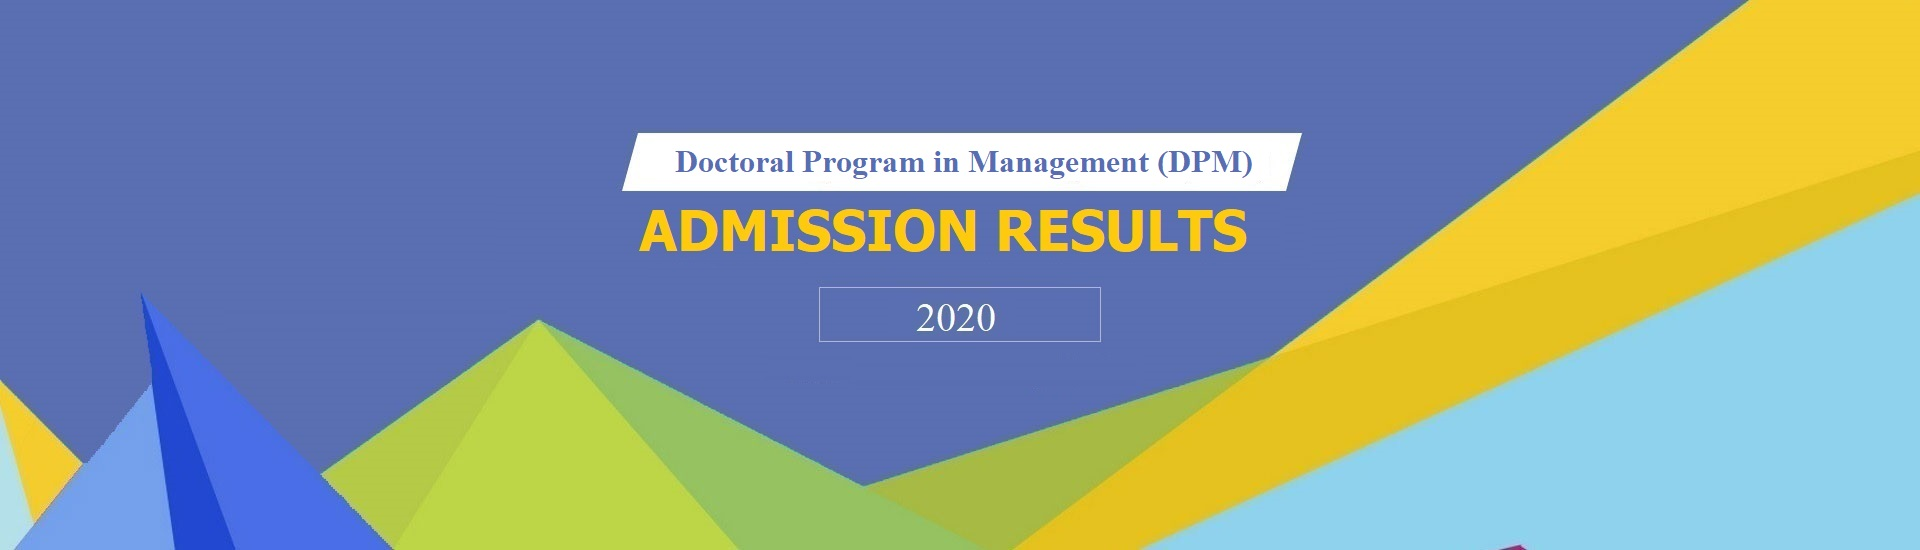 RESULTS-DPM ADMISSION 2020